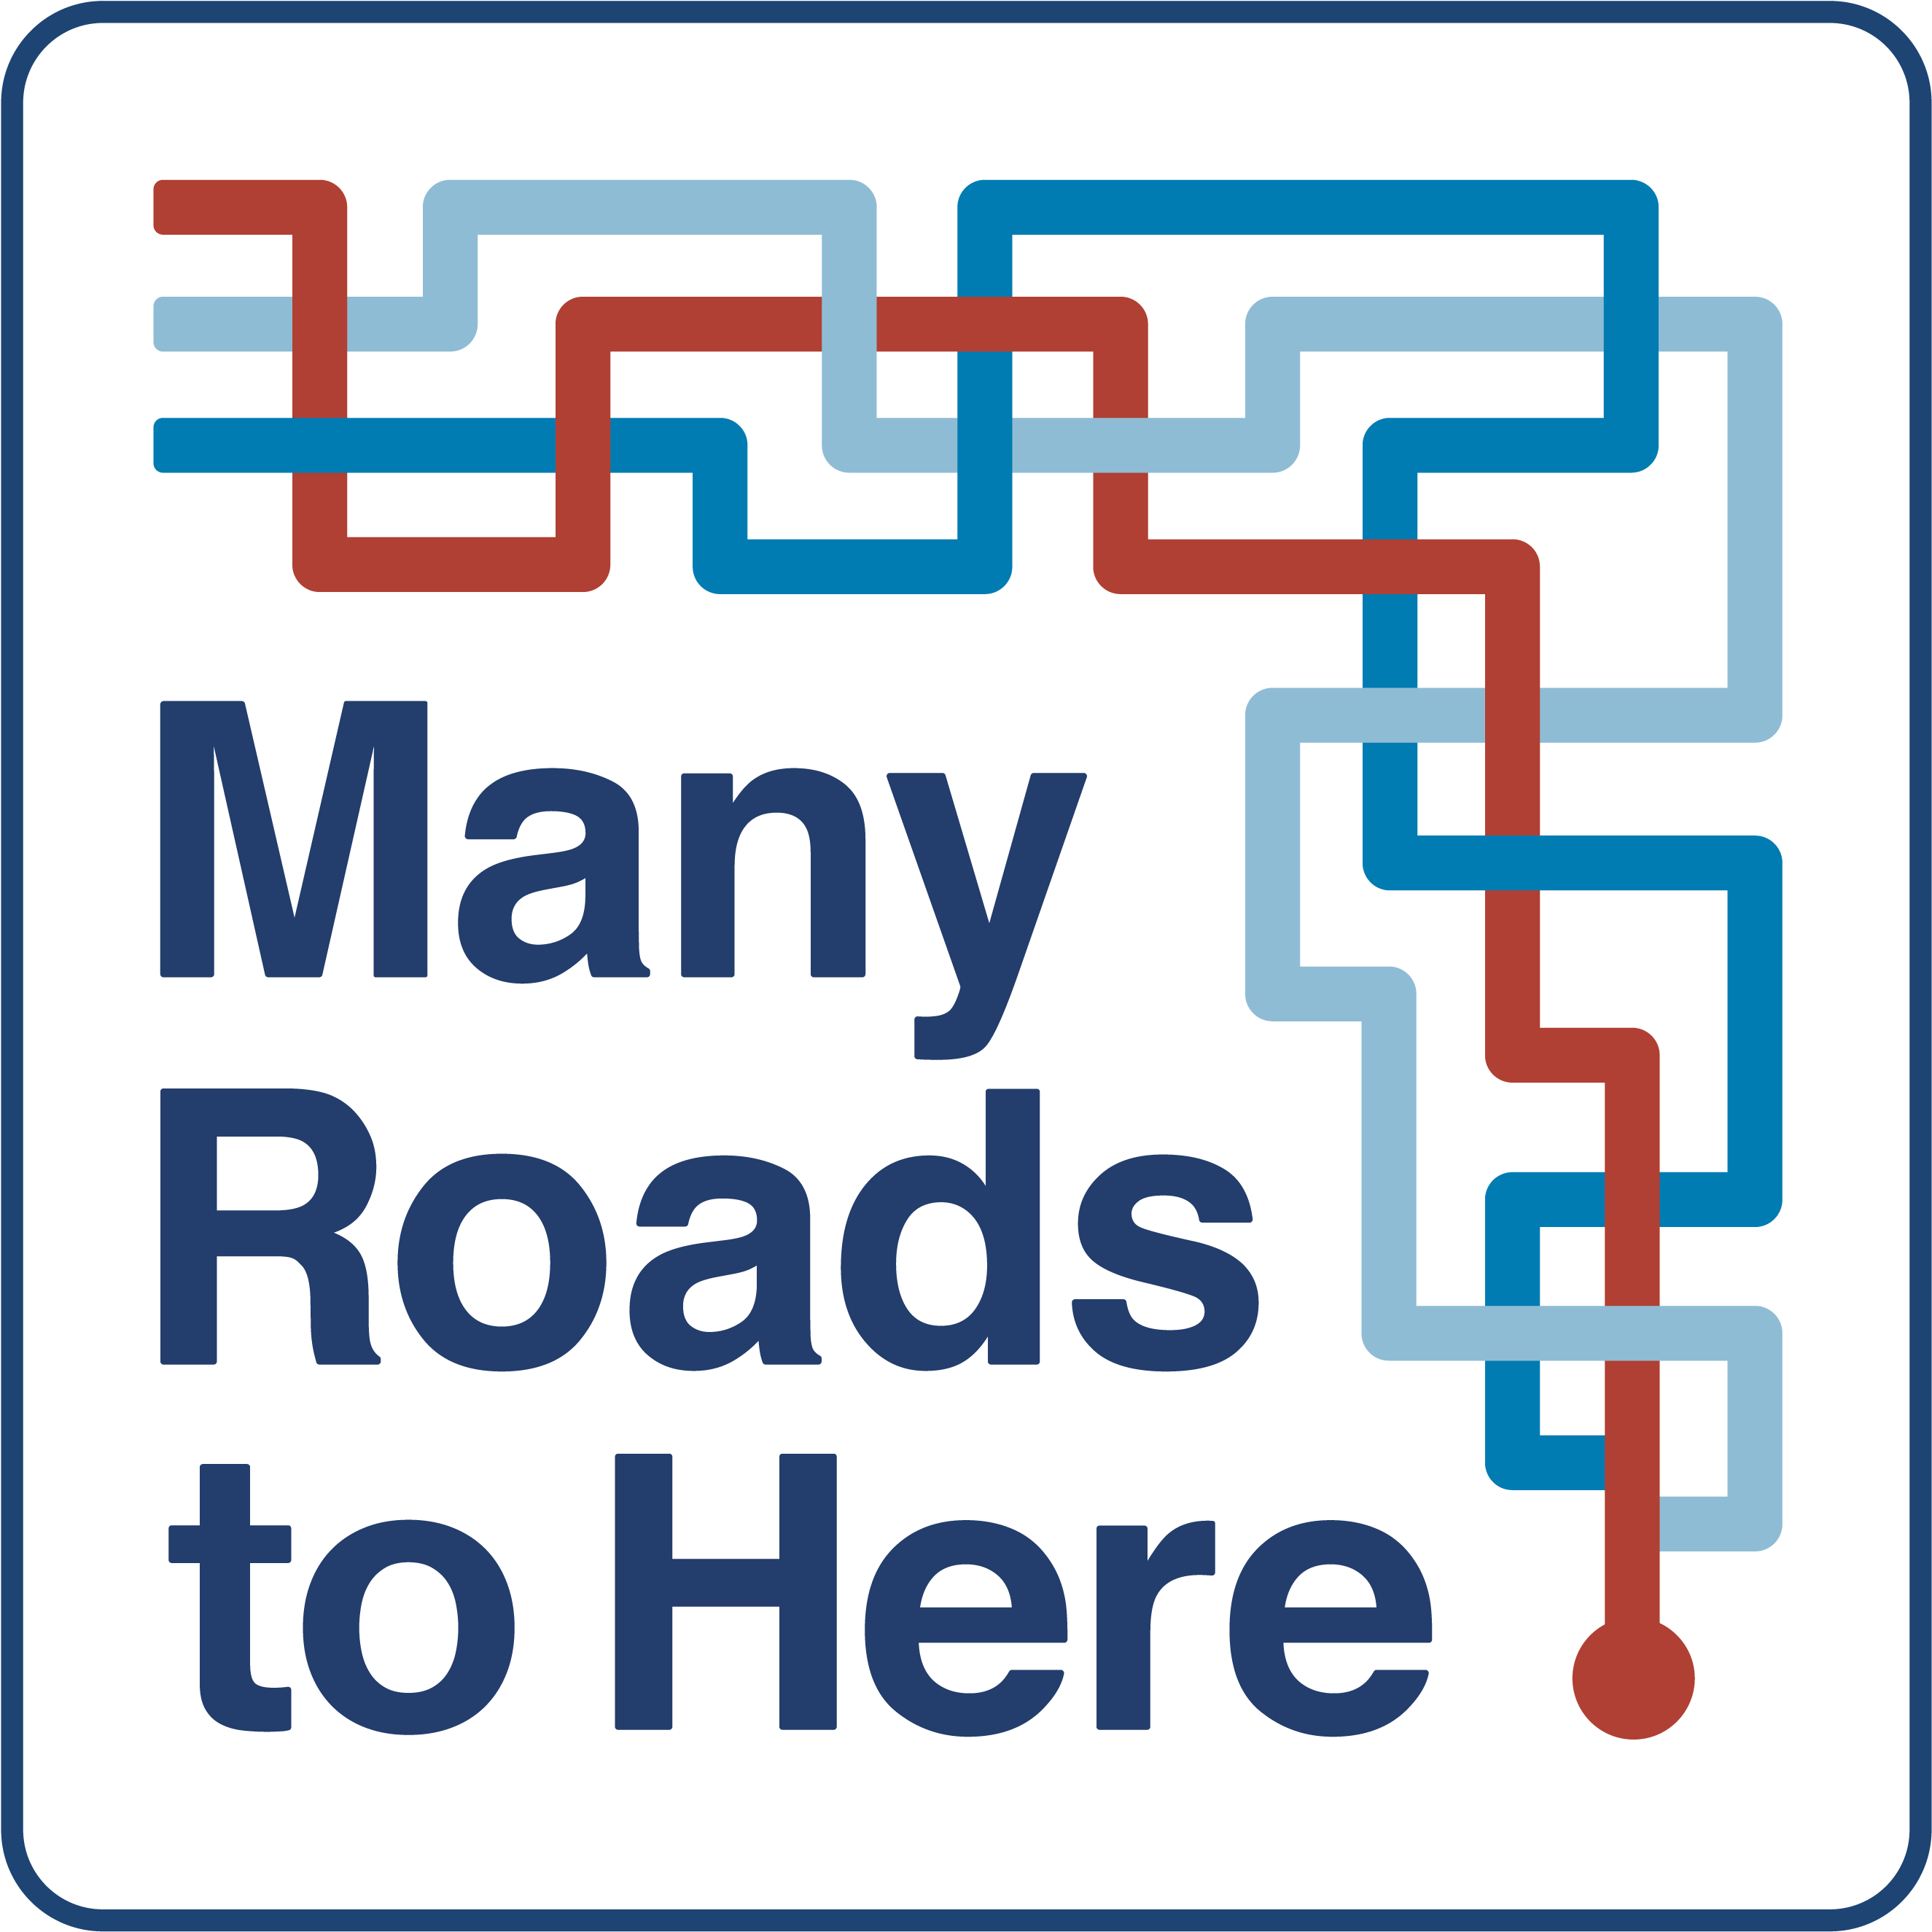 Many Roads to Here